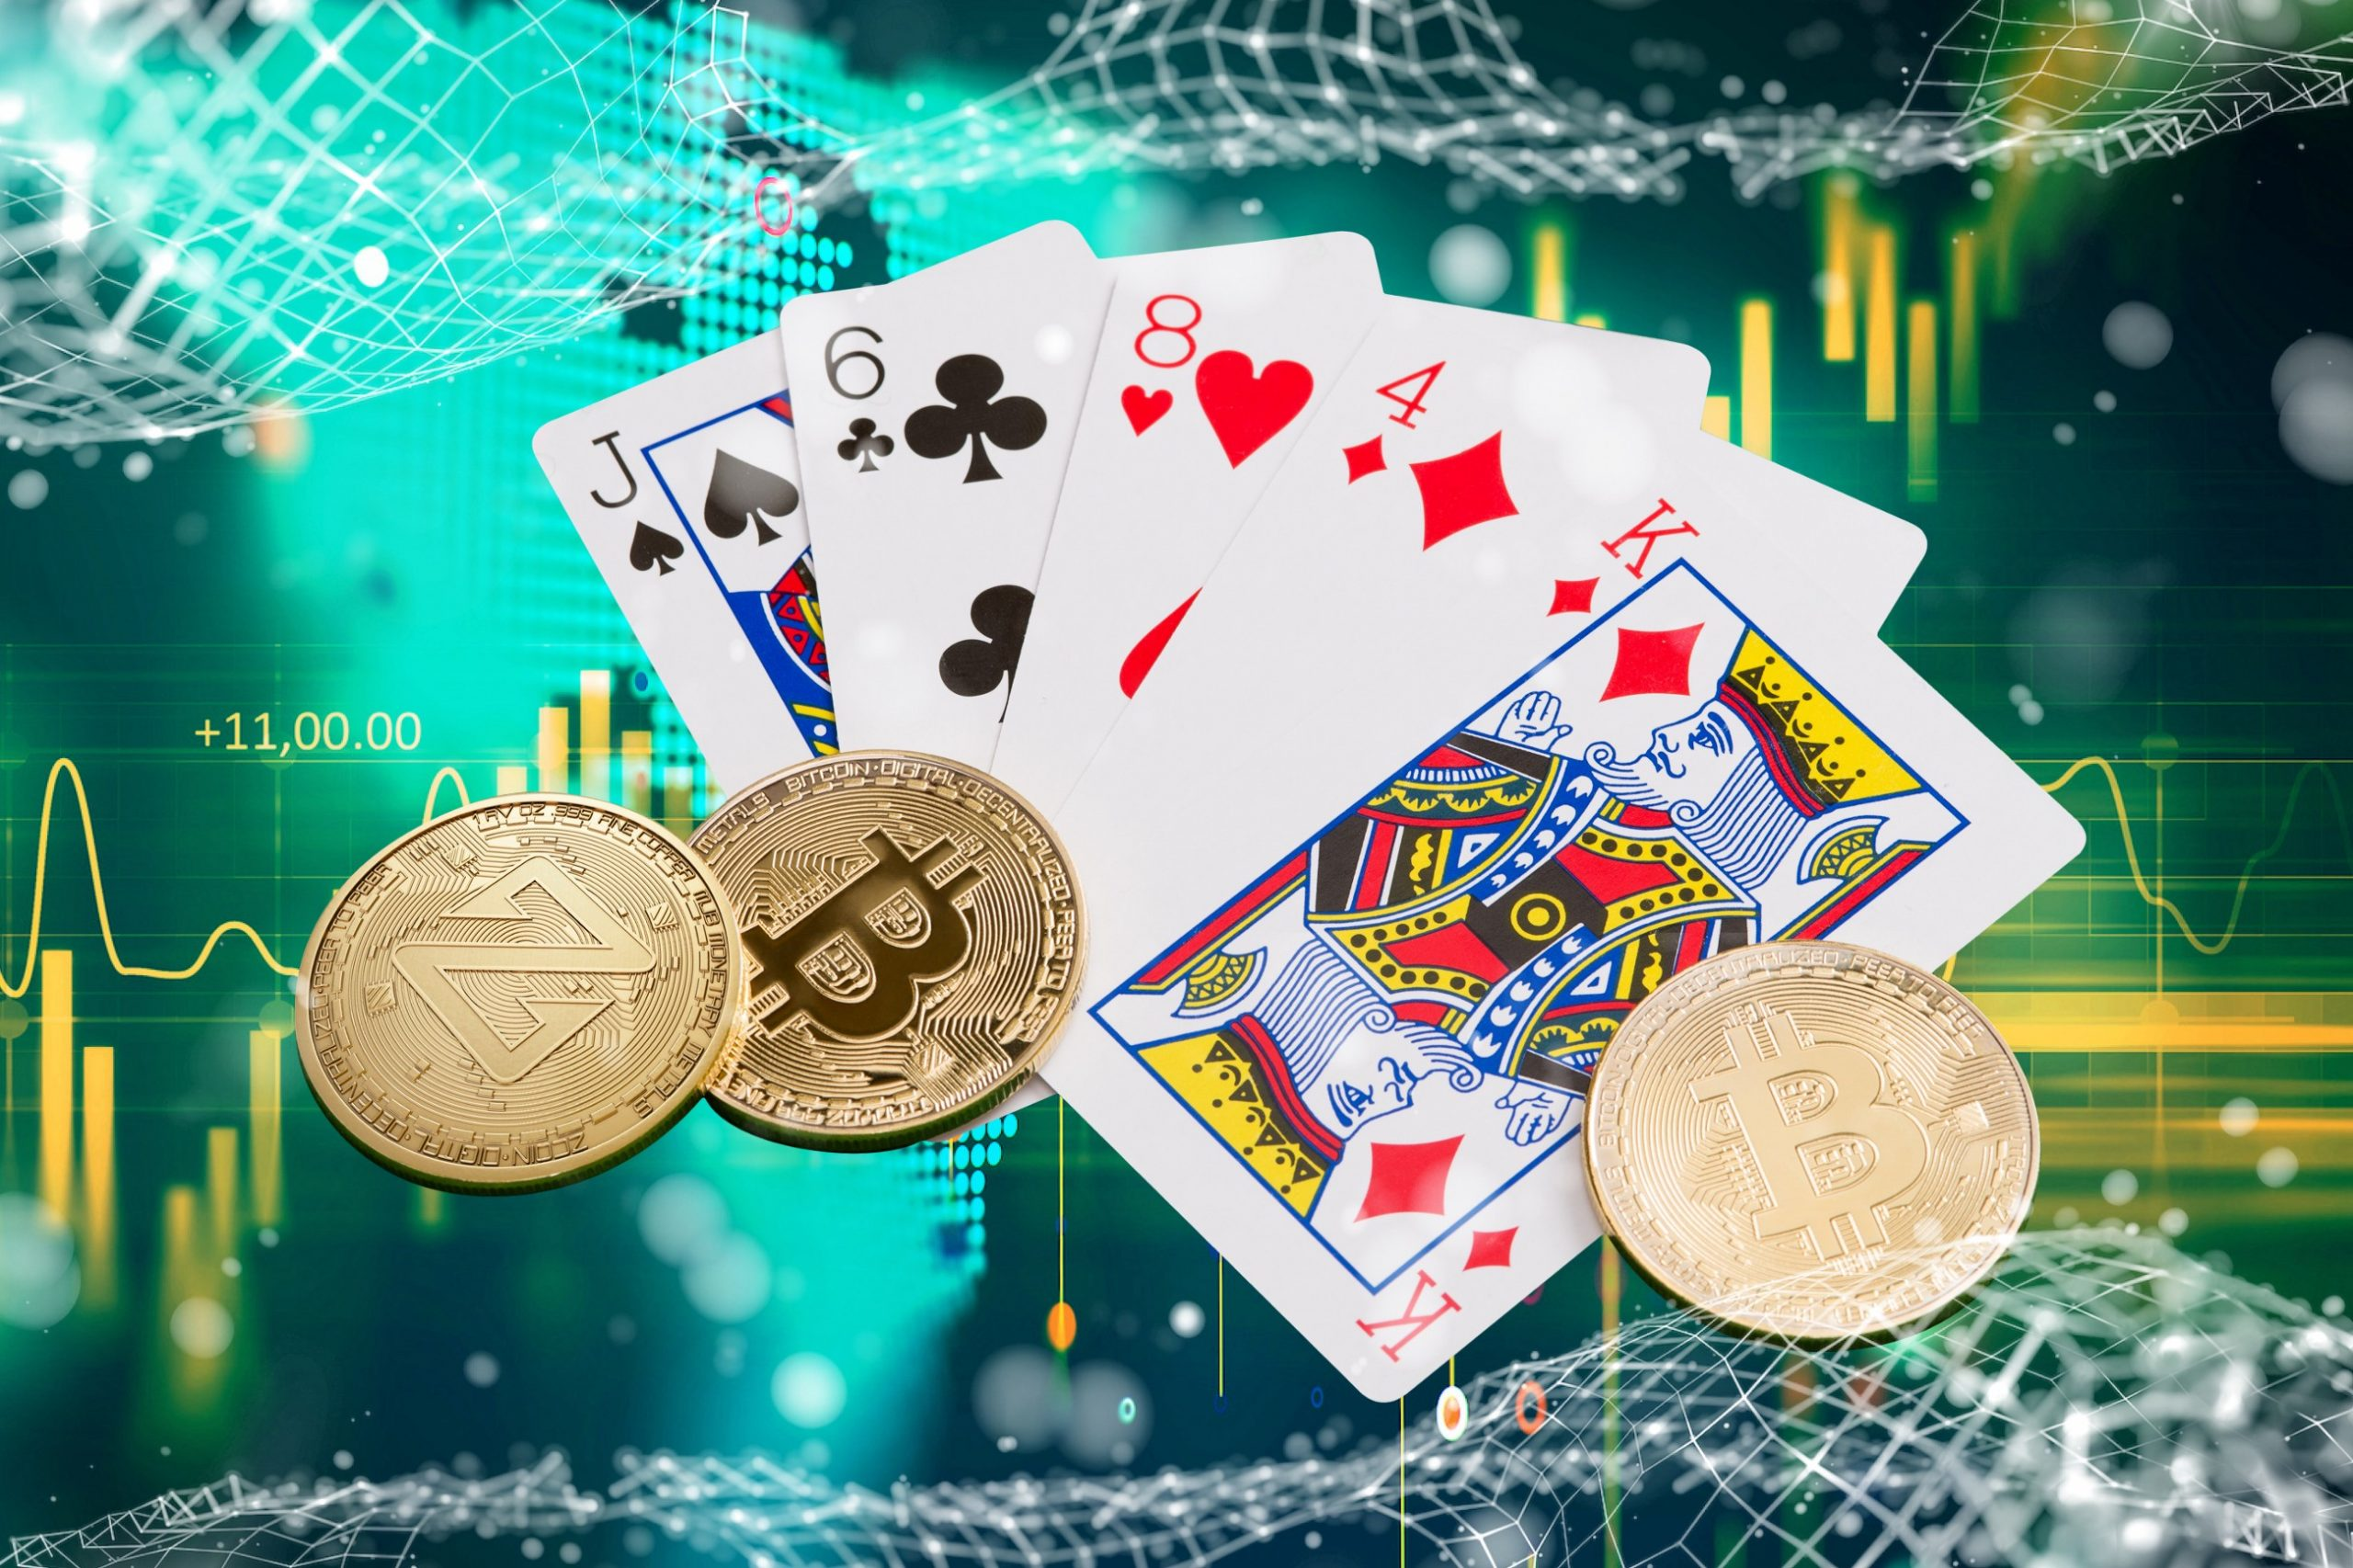 A Glimpse Into The World Of Casino Games - Gambling